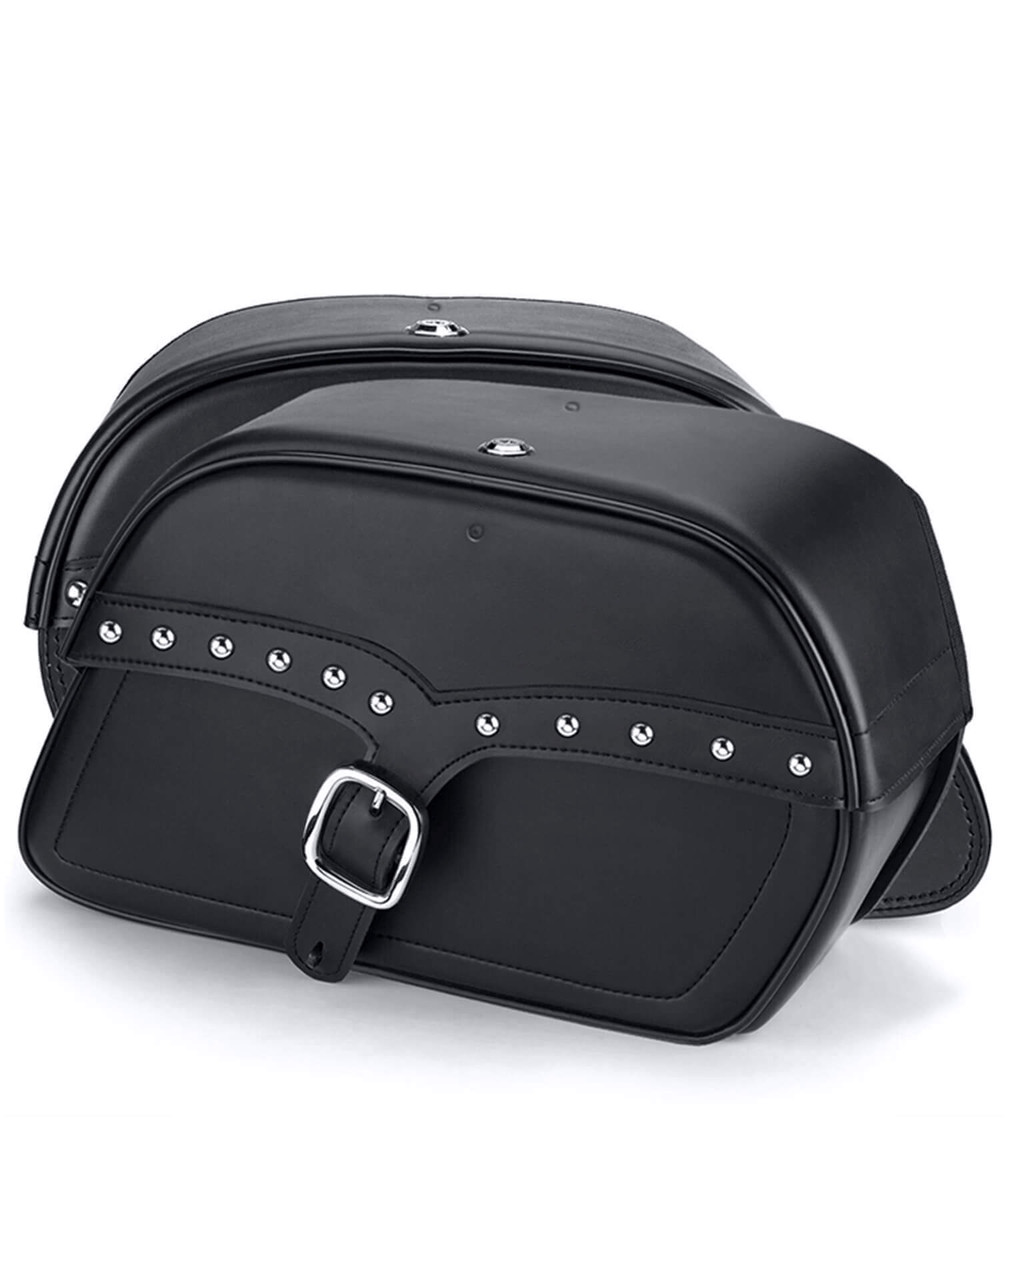 Victory High Ball Charger Single Strap Studded Medium Motorcycle Saddlebags both bags view